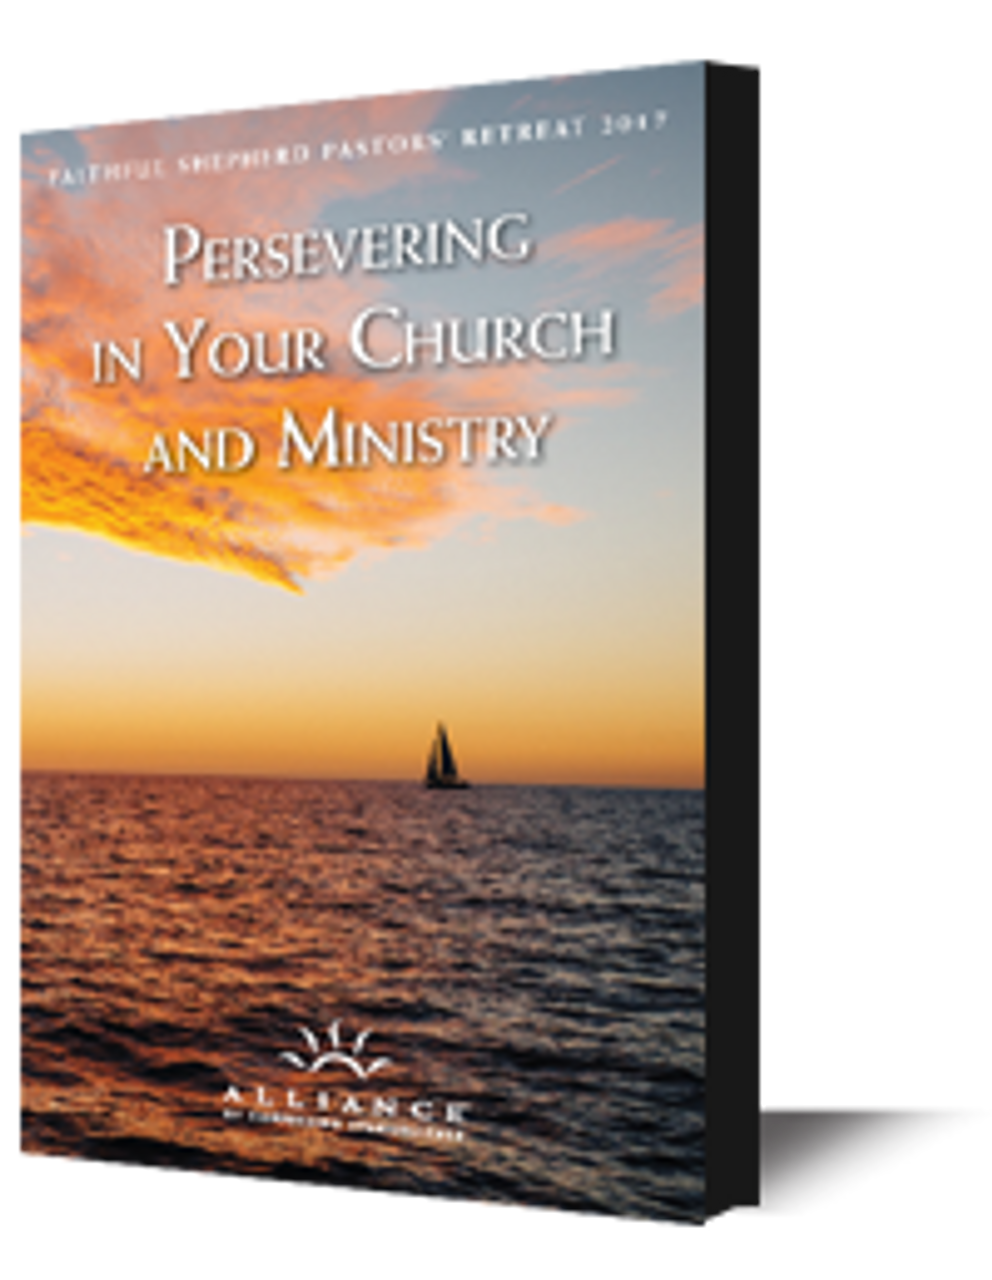 Persevering in Your Church and Ministry 2017 (mp3 Download Set)